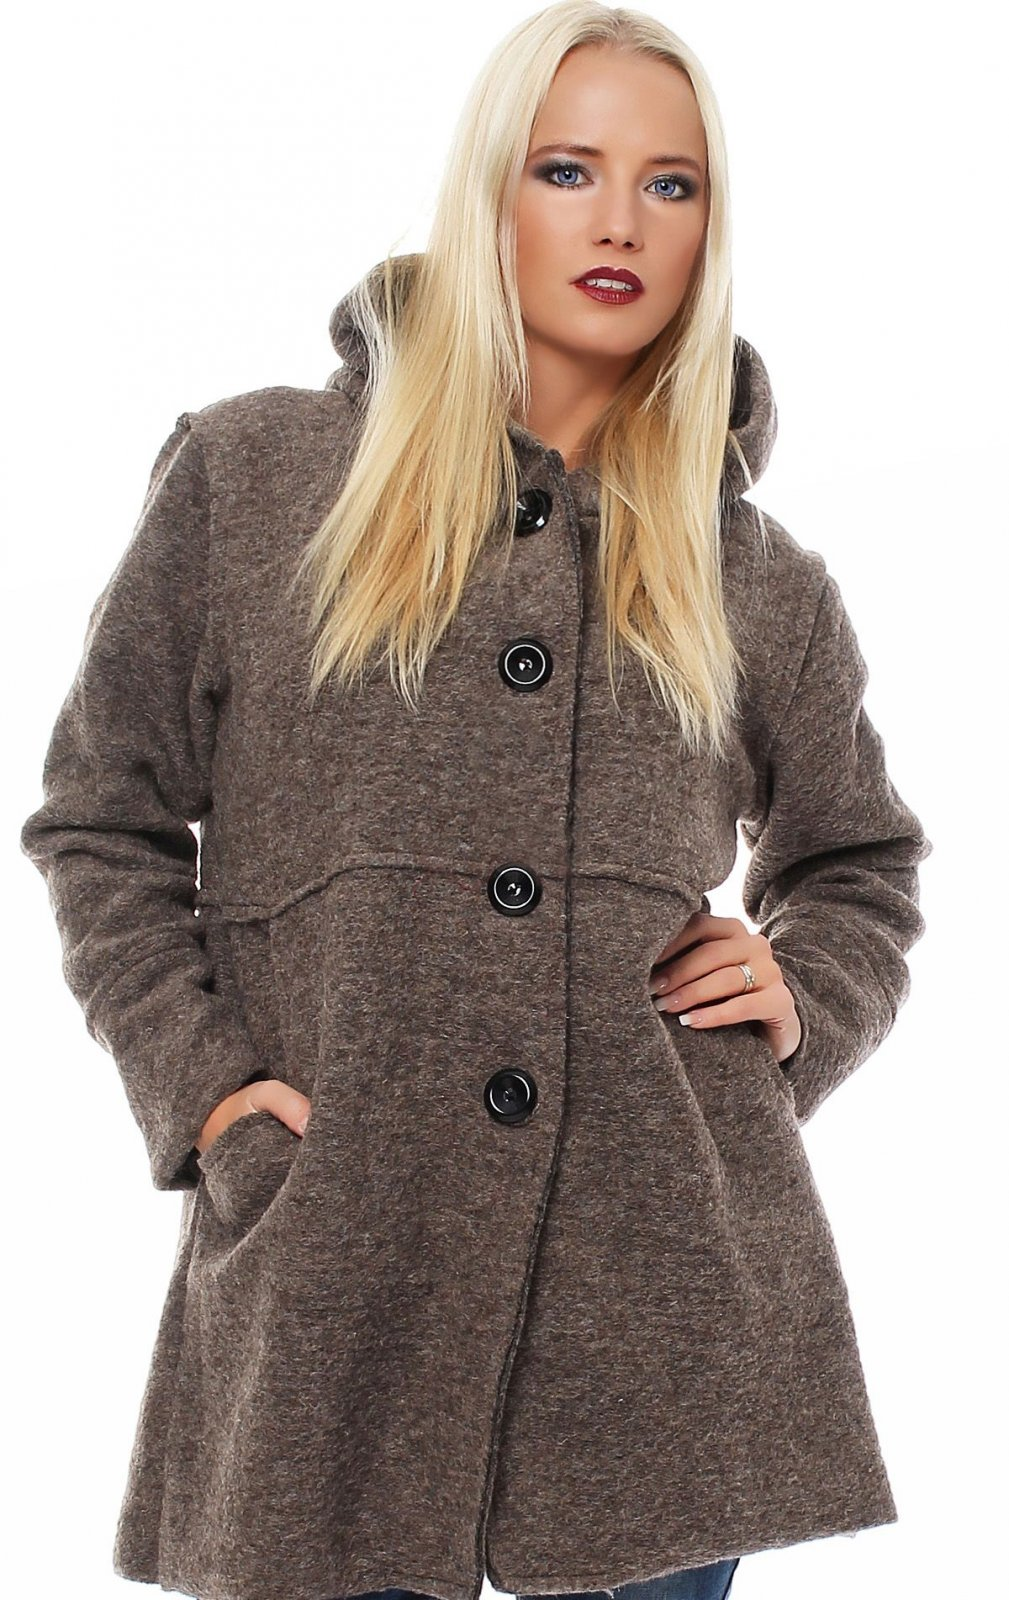 damen herbst winter jacke wolljacke strickjacke wollmantel mit kapuze cardigan ebay. Black Bedroom Furniture Sets. Home Design Ideas